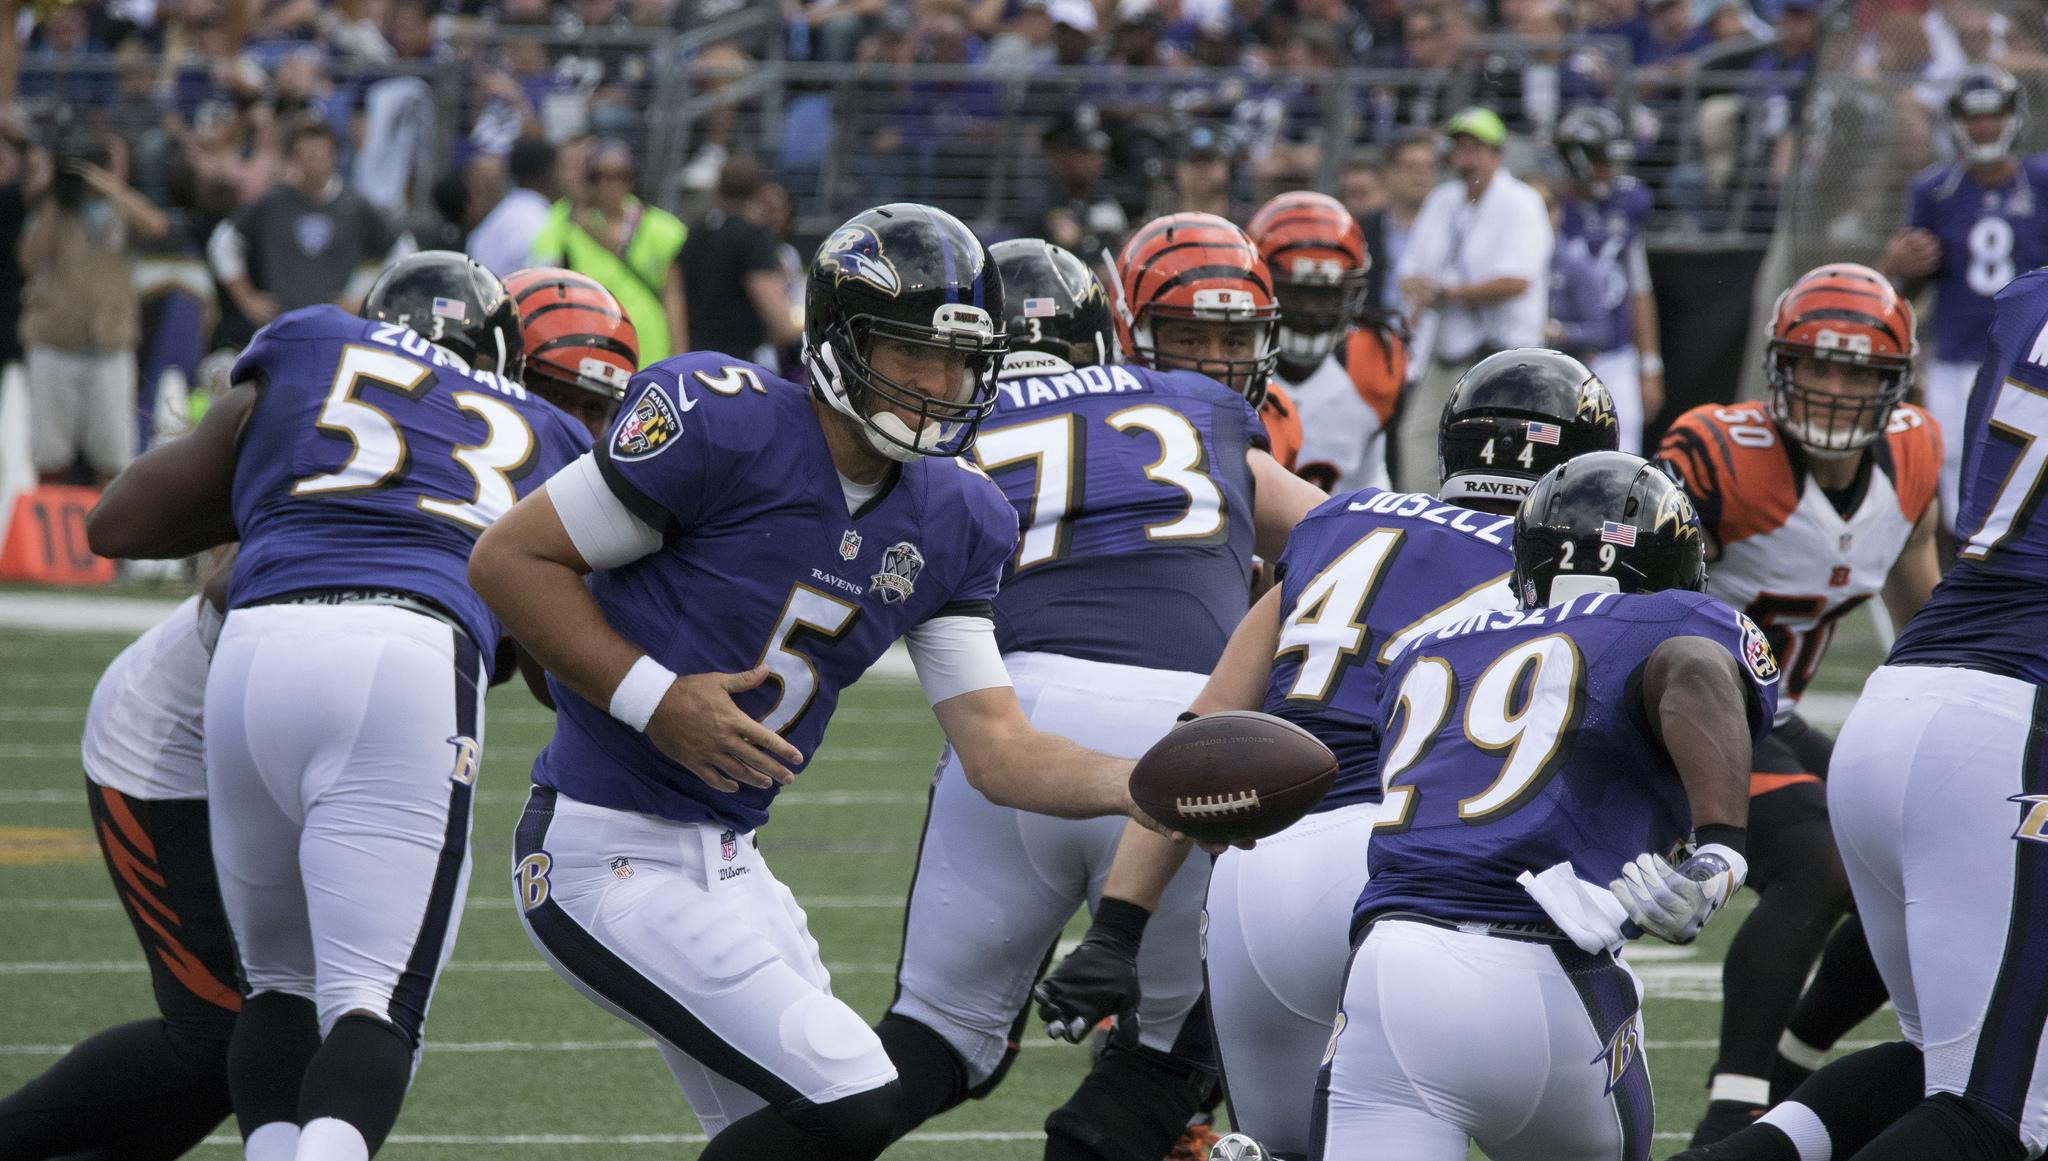 Do you think the Ravens' offense will continue to play well?